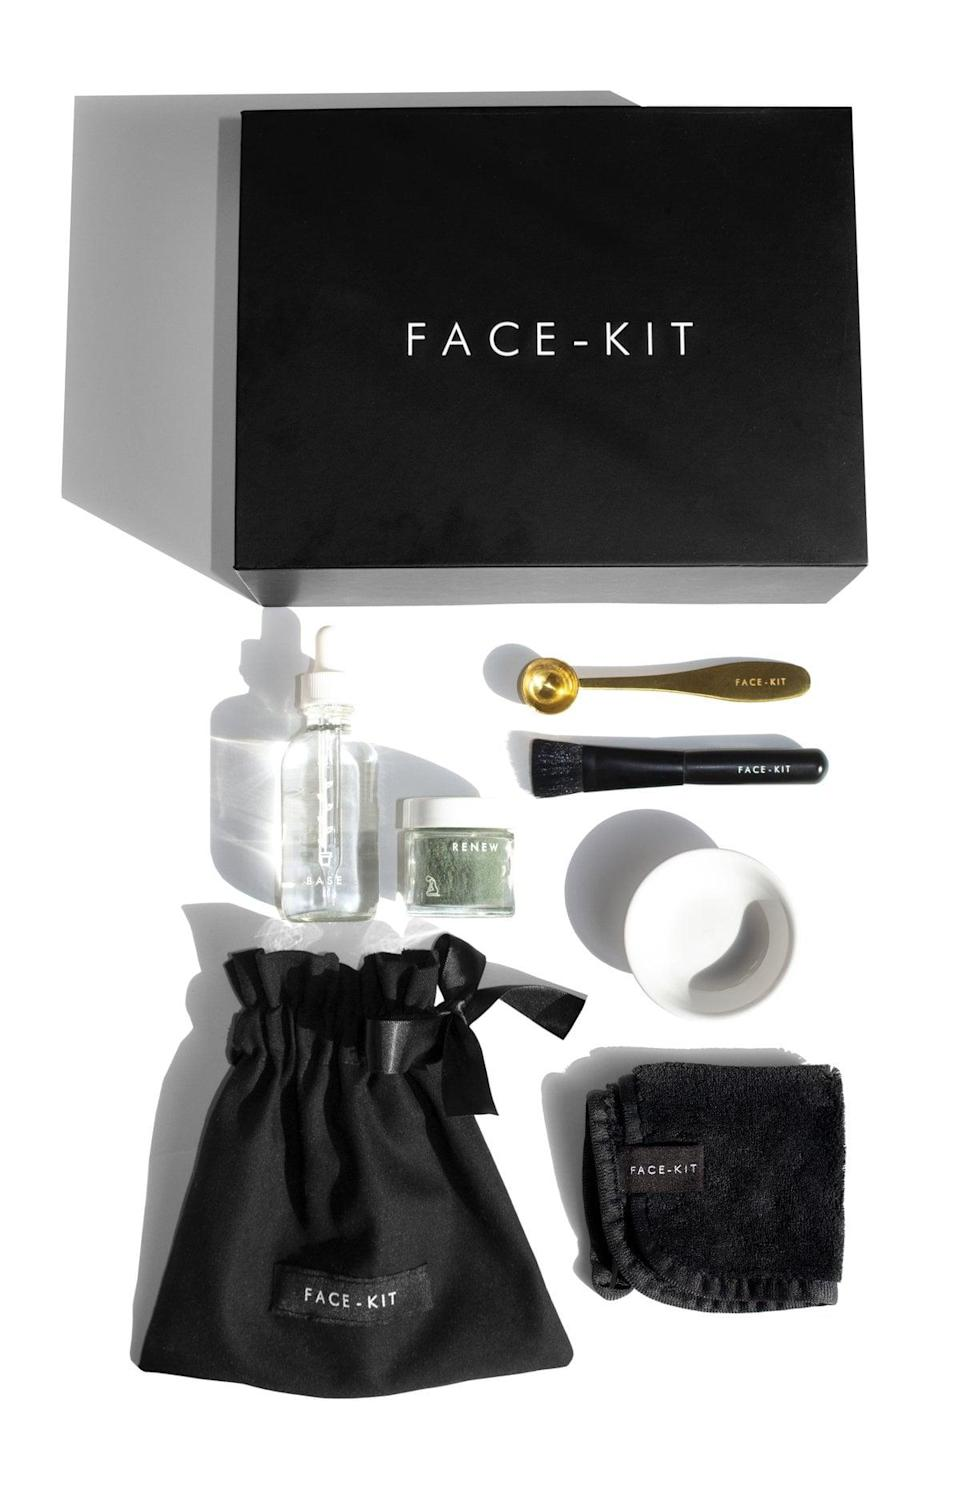 "<p>""Like most beauty editors, I love a good face mask - I do multiple a week. The <a href=""https://www.popsugar.com/buy/Face-Kit-Renew-Mask-Kit-578706?p_name=Face-Kit%20Renew%20Mask%20Kit&retailer=face-kit.com&pid=578706&price=85&evar1=bella%3Aus&evar9=47519595&evar98=https%3A%2F%2Fwww.popsugar.com%2Fbeauty%2Fphoto-gallery%2F47519595%2Fimage%2F47519653%2FFace-Kit-Renew-Mask-Kit&list1=must%20haves%2Ceditors%20pick%2Cskin%20care&prop13=mobile&pdata=1"" class=""link rapid-noclick-resp"" rel=""nofollow noopener"" target=""_blank"" data-ylk=""slk:Face-Kit Renew Mask Kit"">Face-Kit Renew Mask Kit</a> ($85) is the newest one I've gotten to try and let me just say, it is more than a face mask. The mix-it-yourself experience adds an element of self-care to it that I love. The kit comes with the mask powder, mixing base, a brush, spoon, glass mixing bowl, cleansing cloth, and linen bag to keep it all together. It really takes my at-home facial to a whole new level."" - JH</p>"